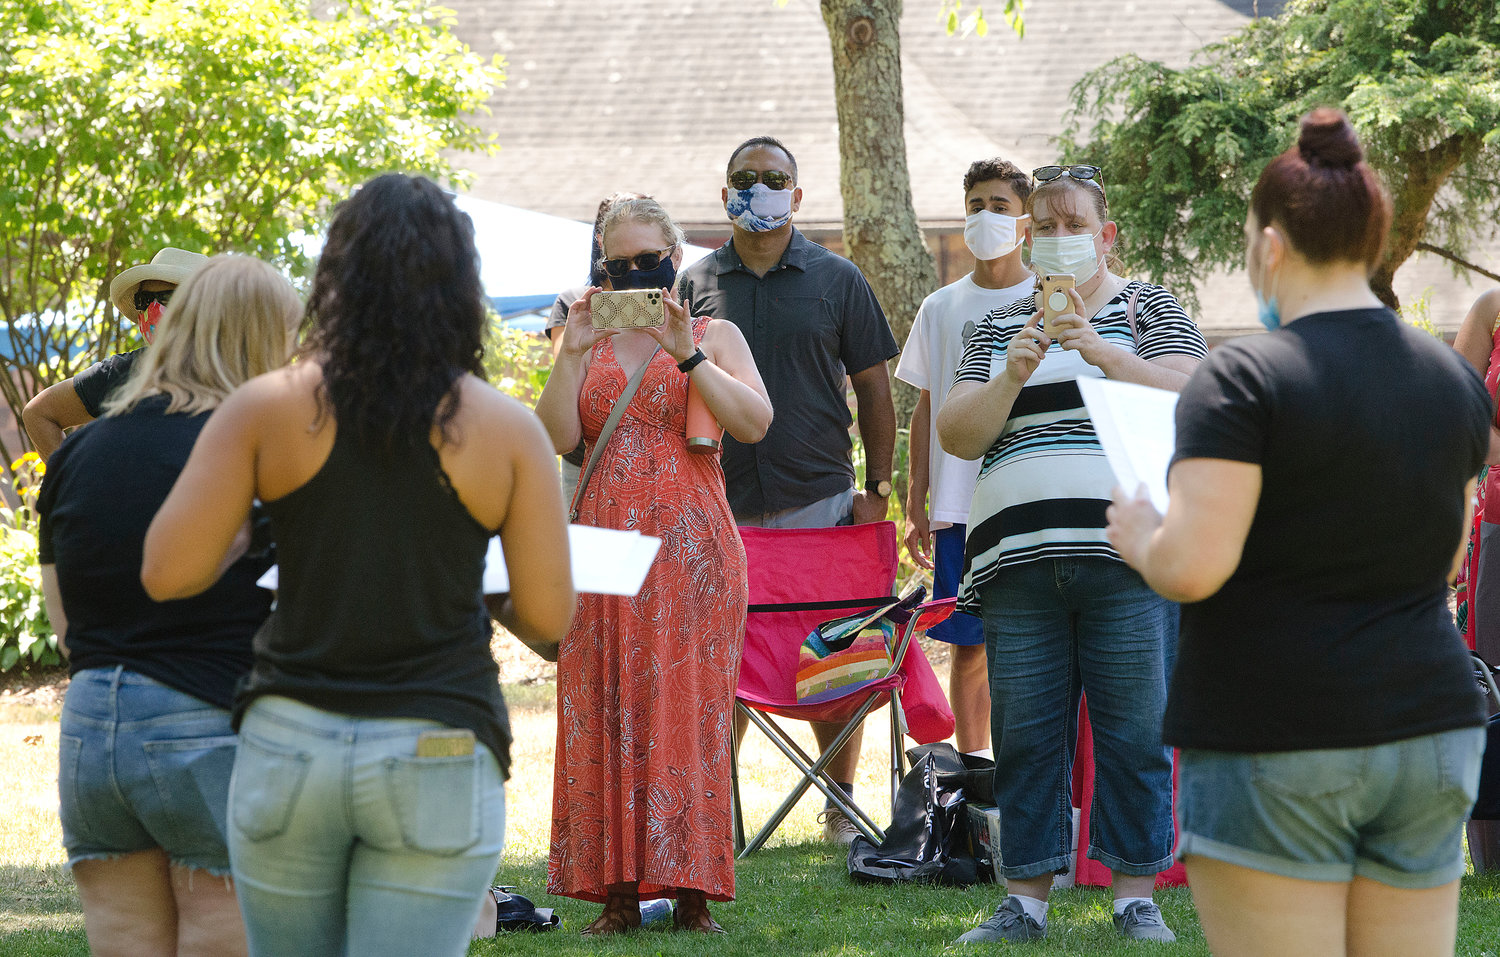 Parents look on as the JDP A Capella group sings during the Looff-East Providence Arts Festival at Hunts Mill on Saturday, Aug. 8.